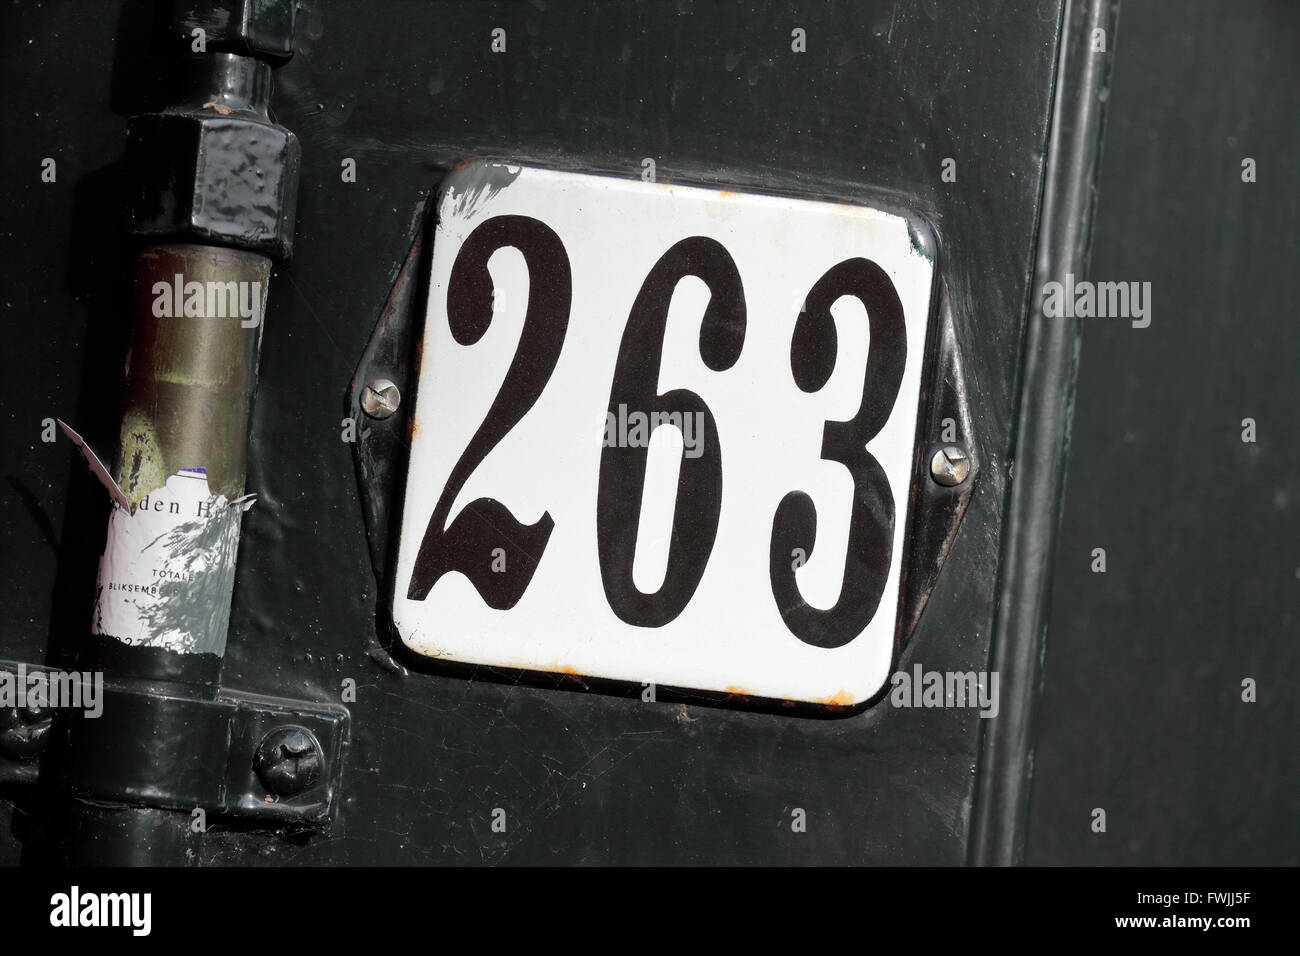 Close up of the door number on 263 Prinsengracht, the WW2 home Anne Frank House & annex in Amsterdam, Netherlands. - Stock Image